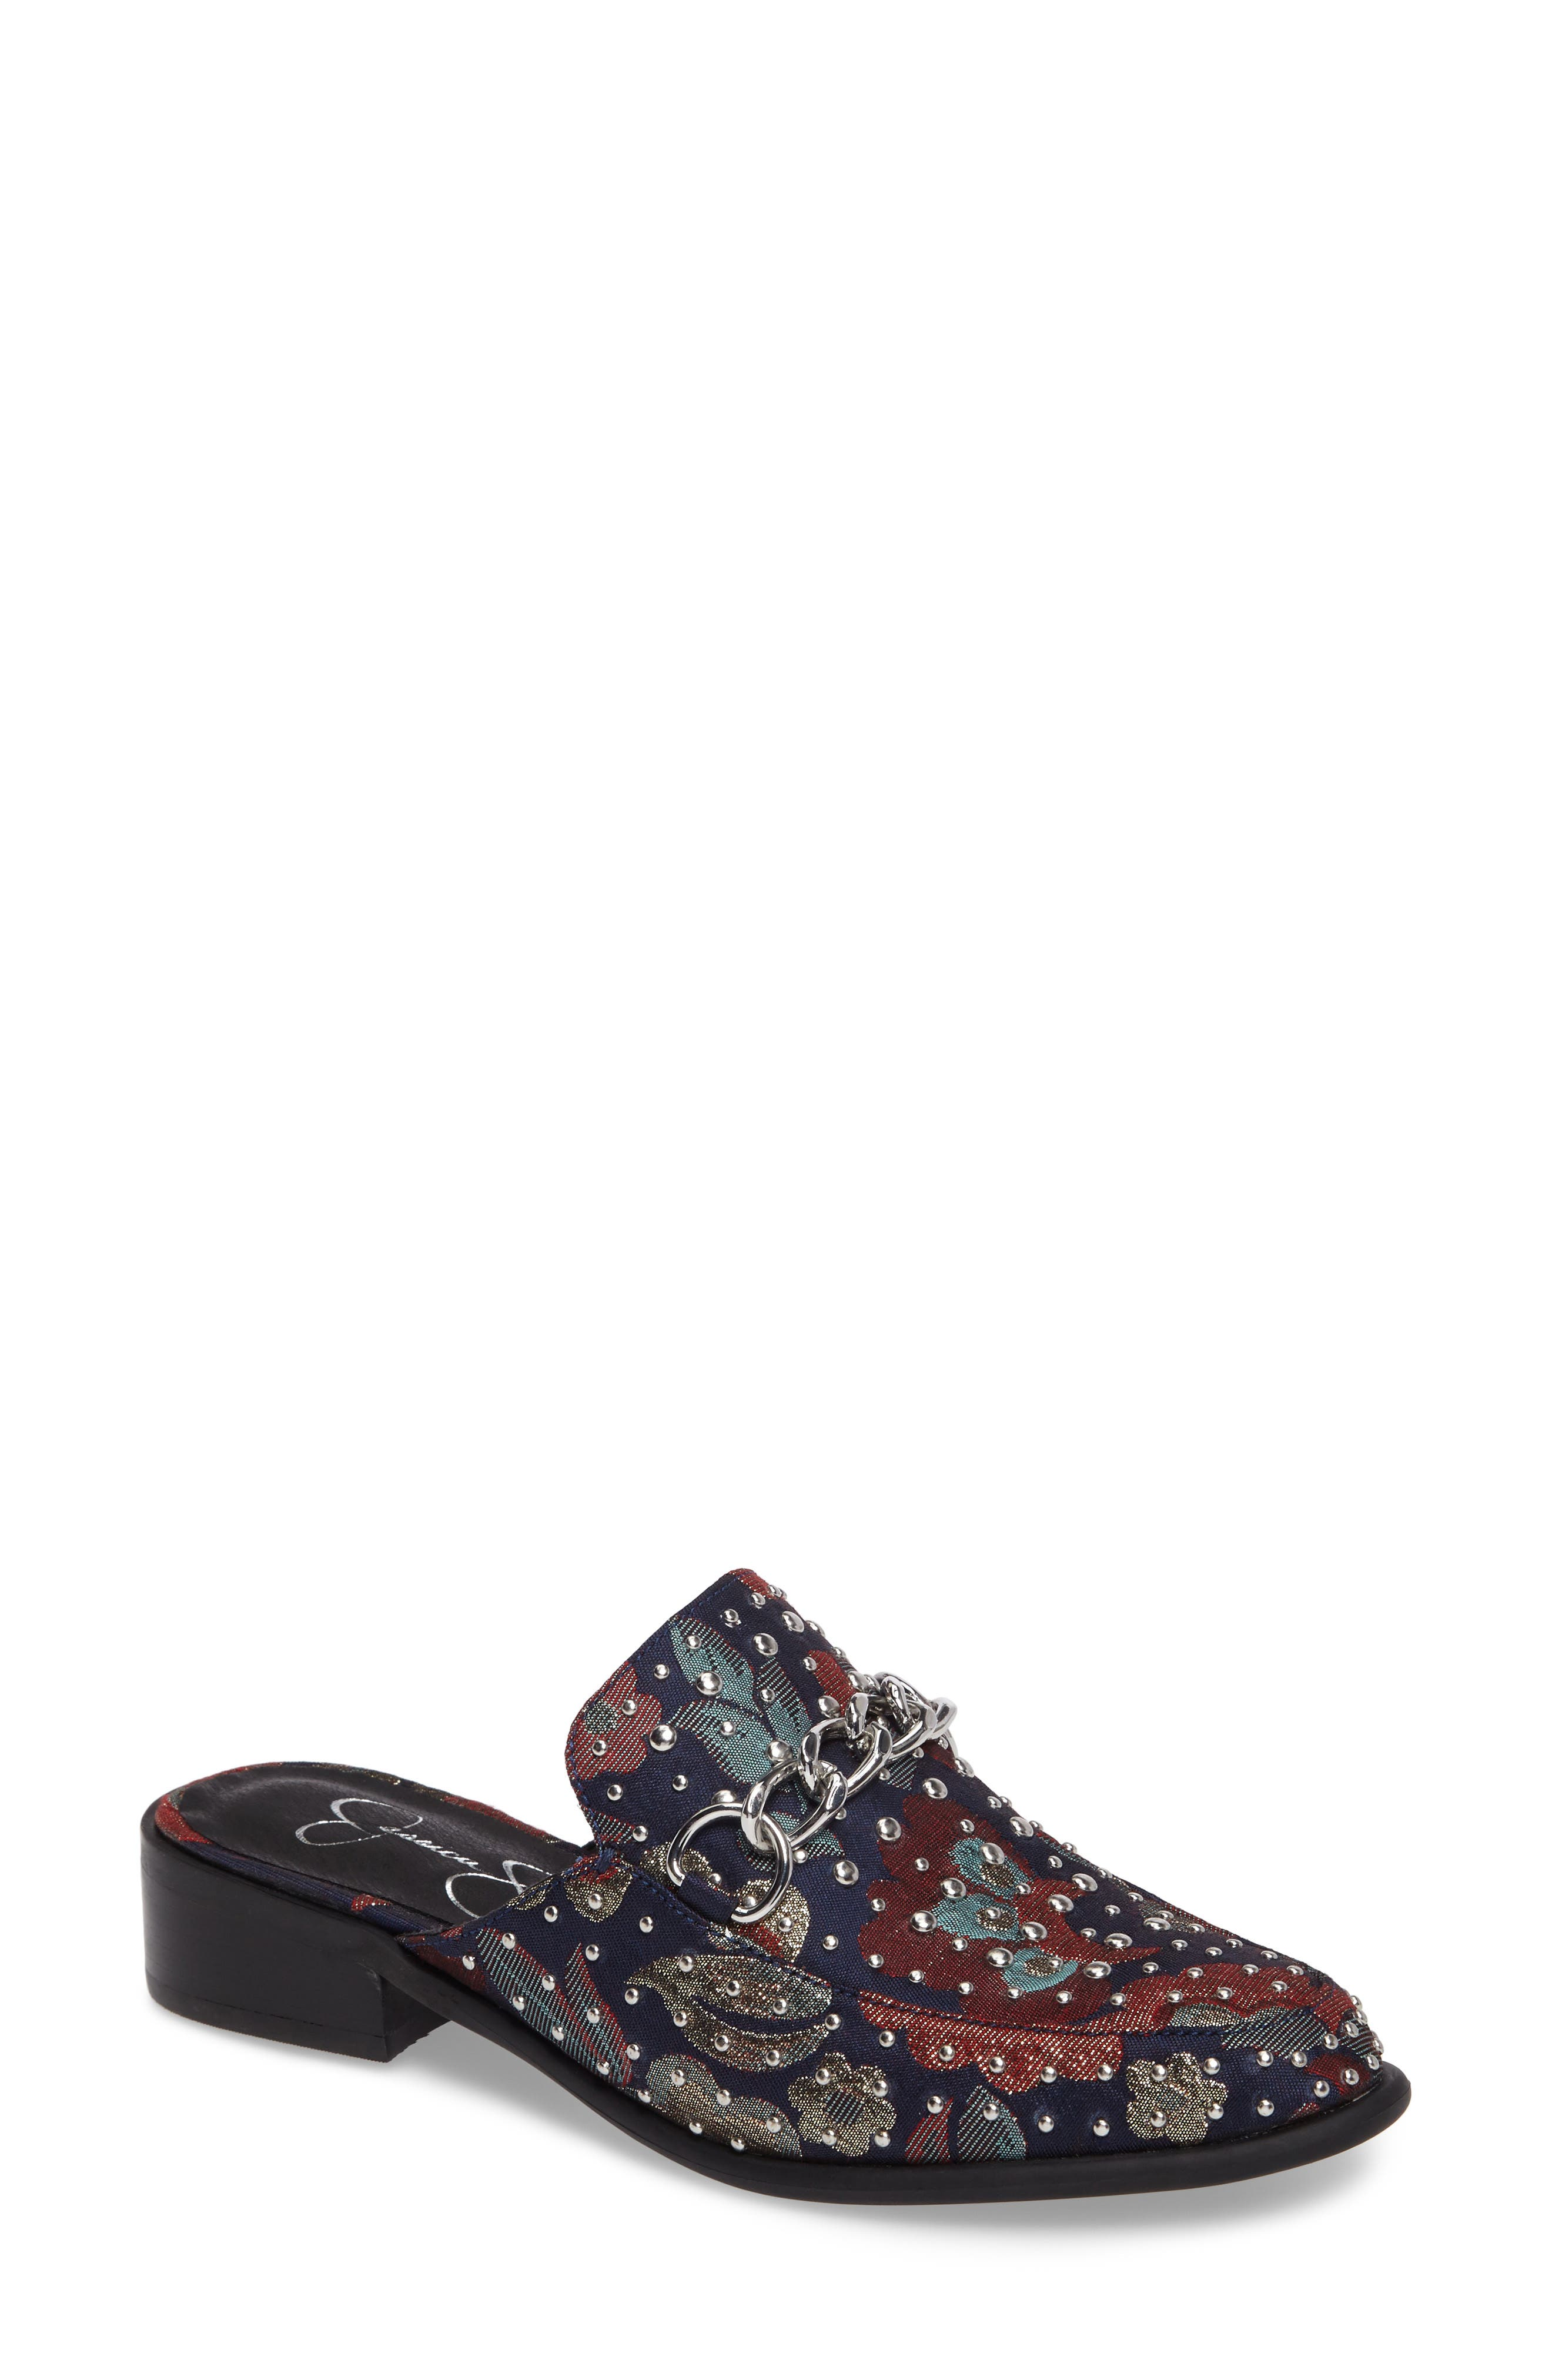 Beez Loafer Mule,                             Main thumbnail 1, color,                             Blue Multi Brocade Fabric